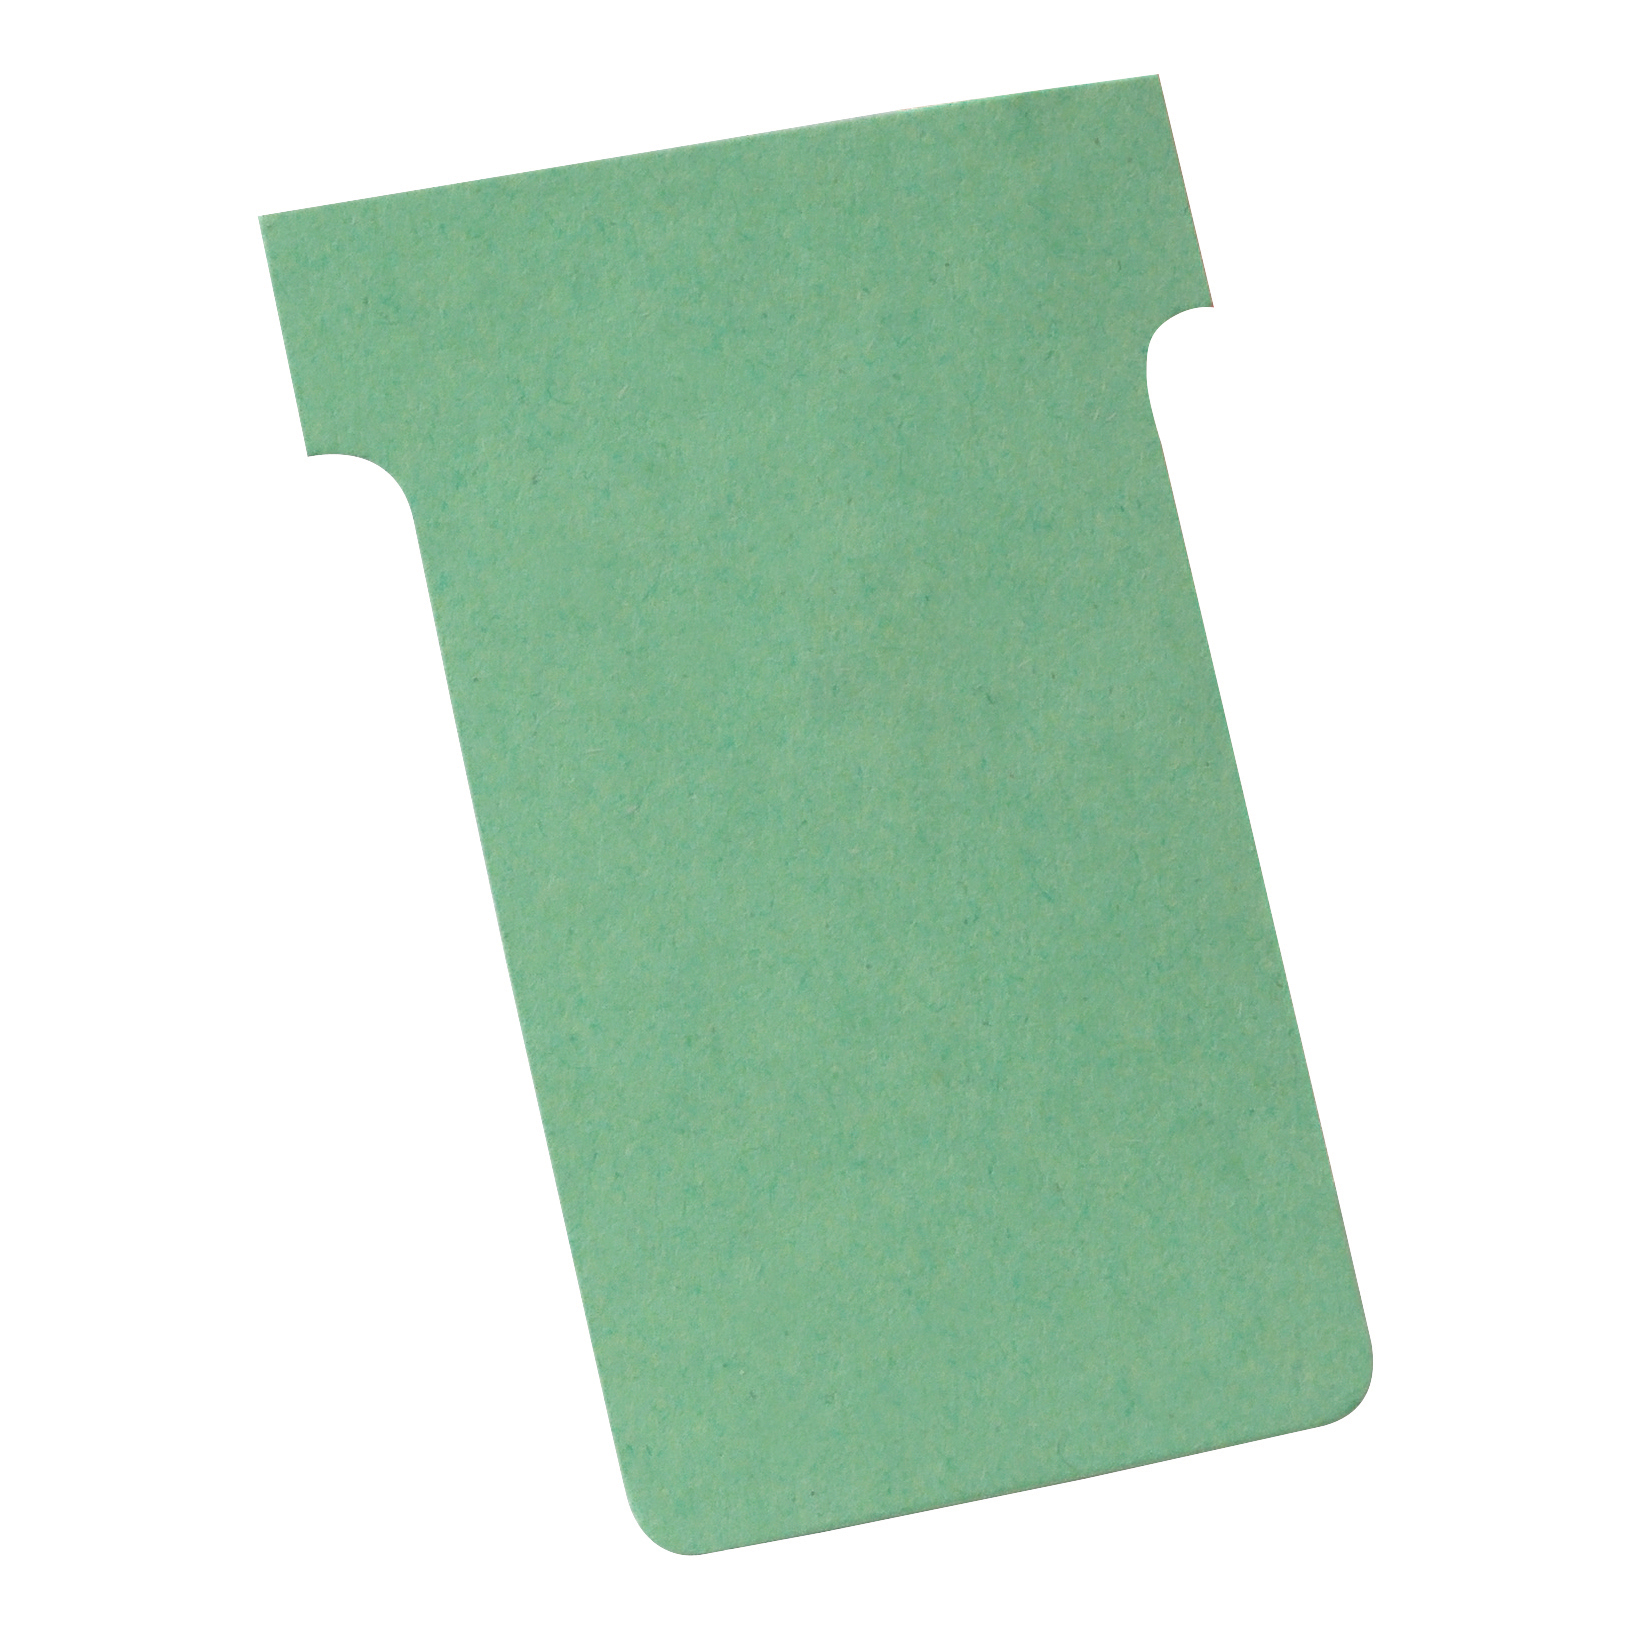 Nobo T-Cards 160gsm Tab Top 15mm W61x Bottom W48.5x Full H86mm Size 2 Green Ref 32938902 [Pack 100]